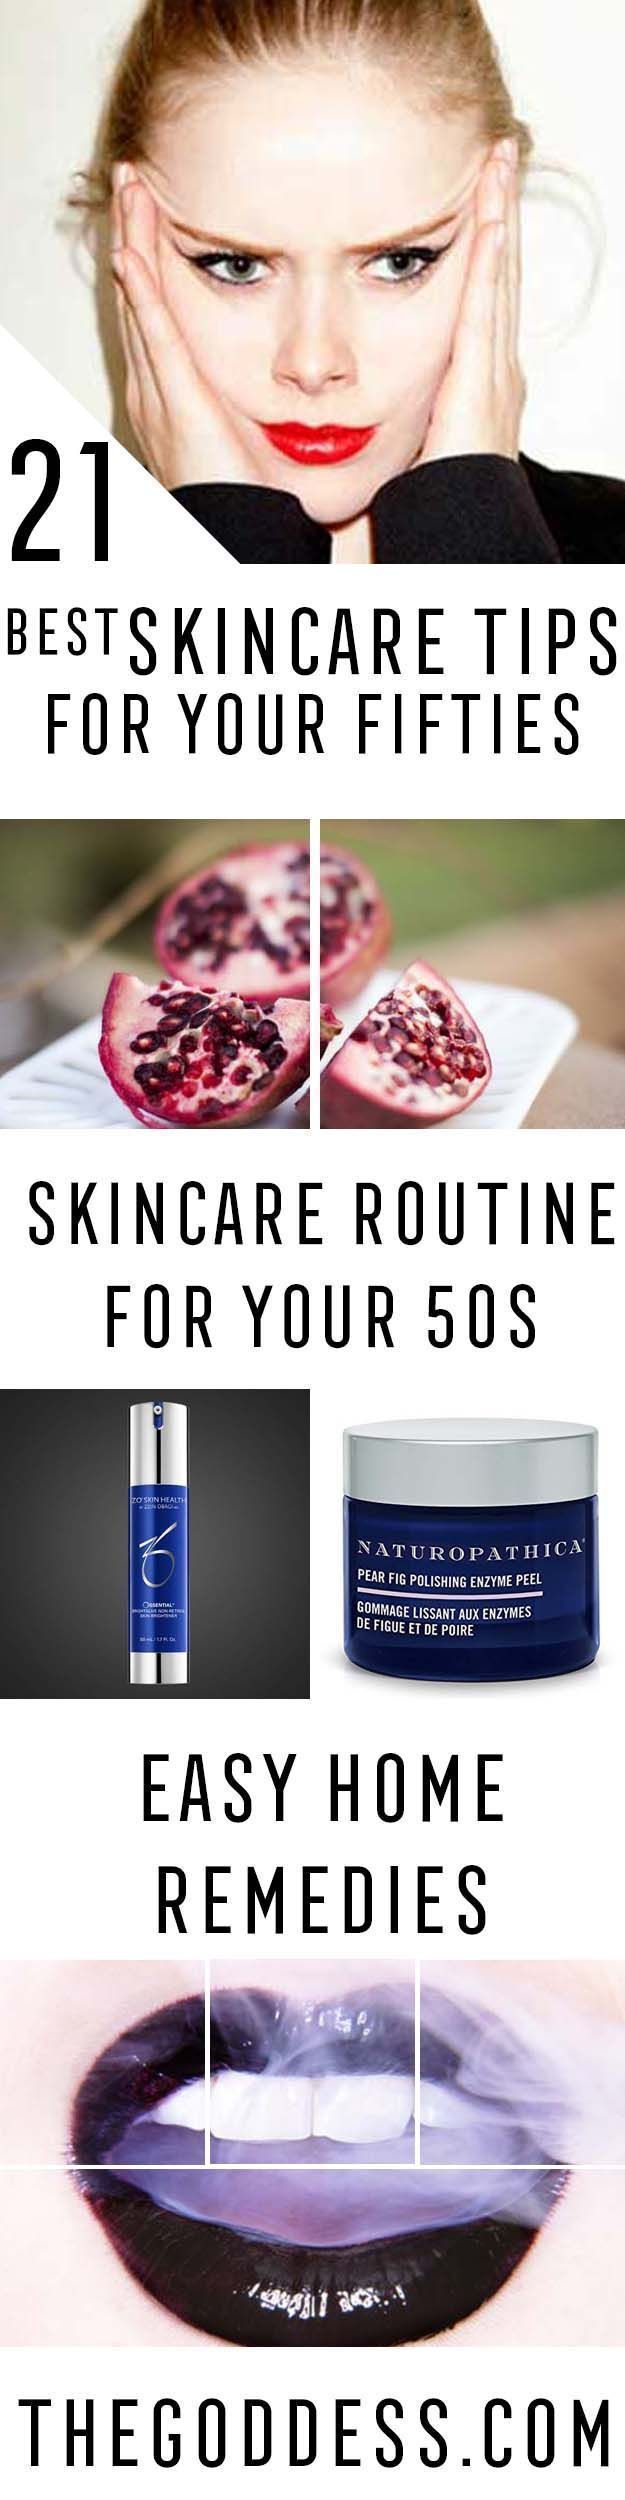 Best Skincare Tips for Your 50s -Check Out These Step By Step, Easy Anti Aging Routines and Skin Care Tips For Women. We Cover Essential Oils, Eye Creams, And Makeup Tips To Help You Stay Looking Younger To Keep That Beautiful Face And Beauty. Anti-Aging #skincareantiaginglookyounger